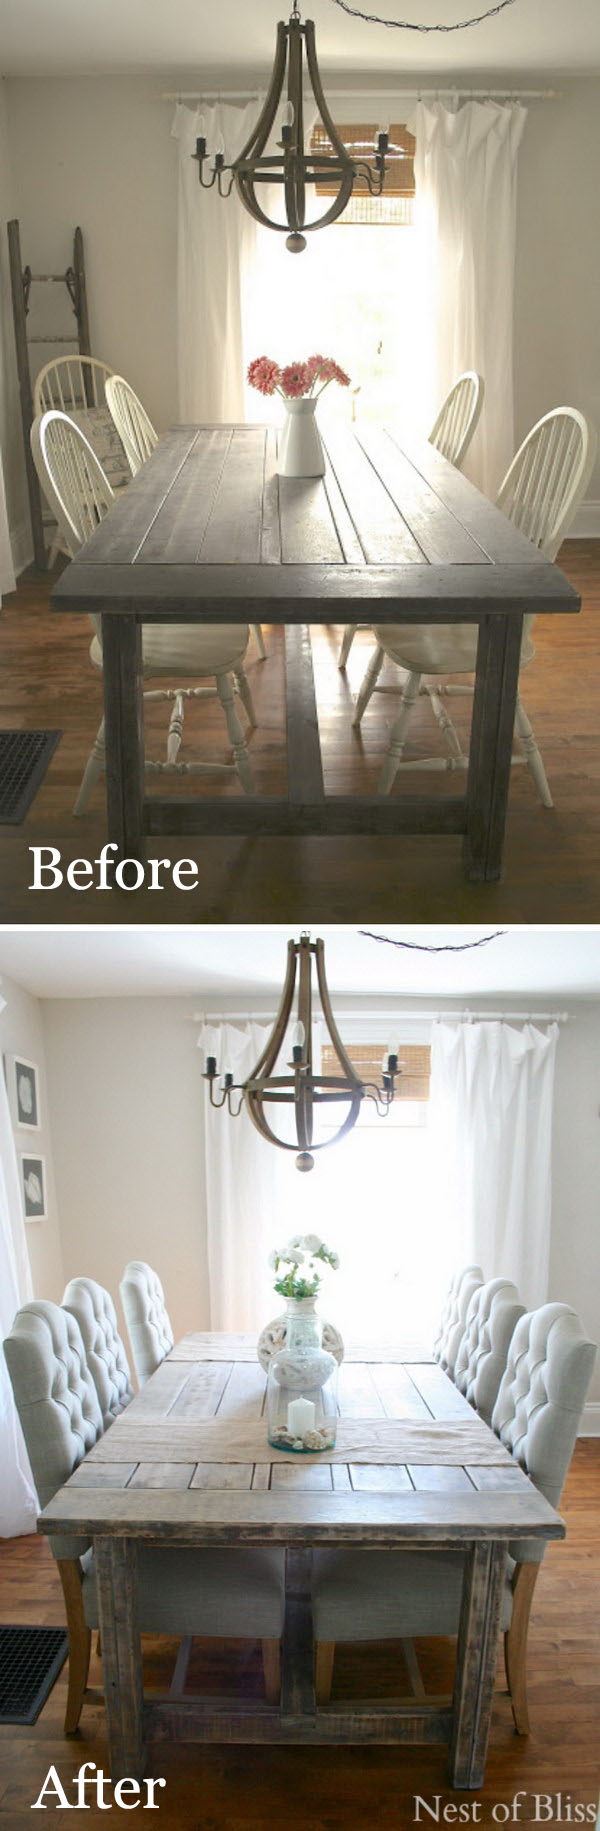 41-42-dining-room-makeover-ideas-tutorials